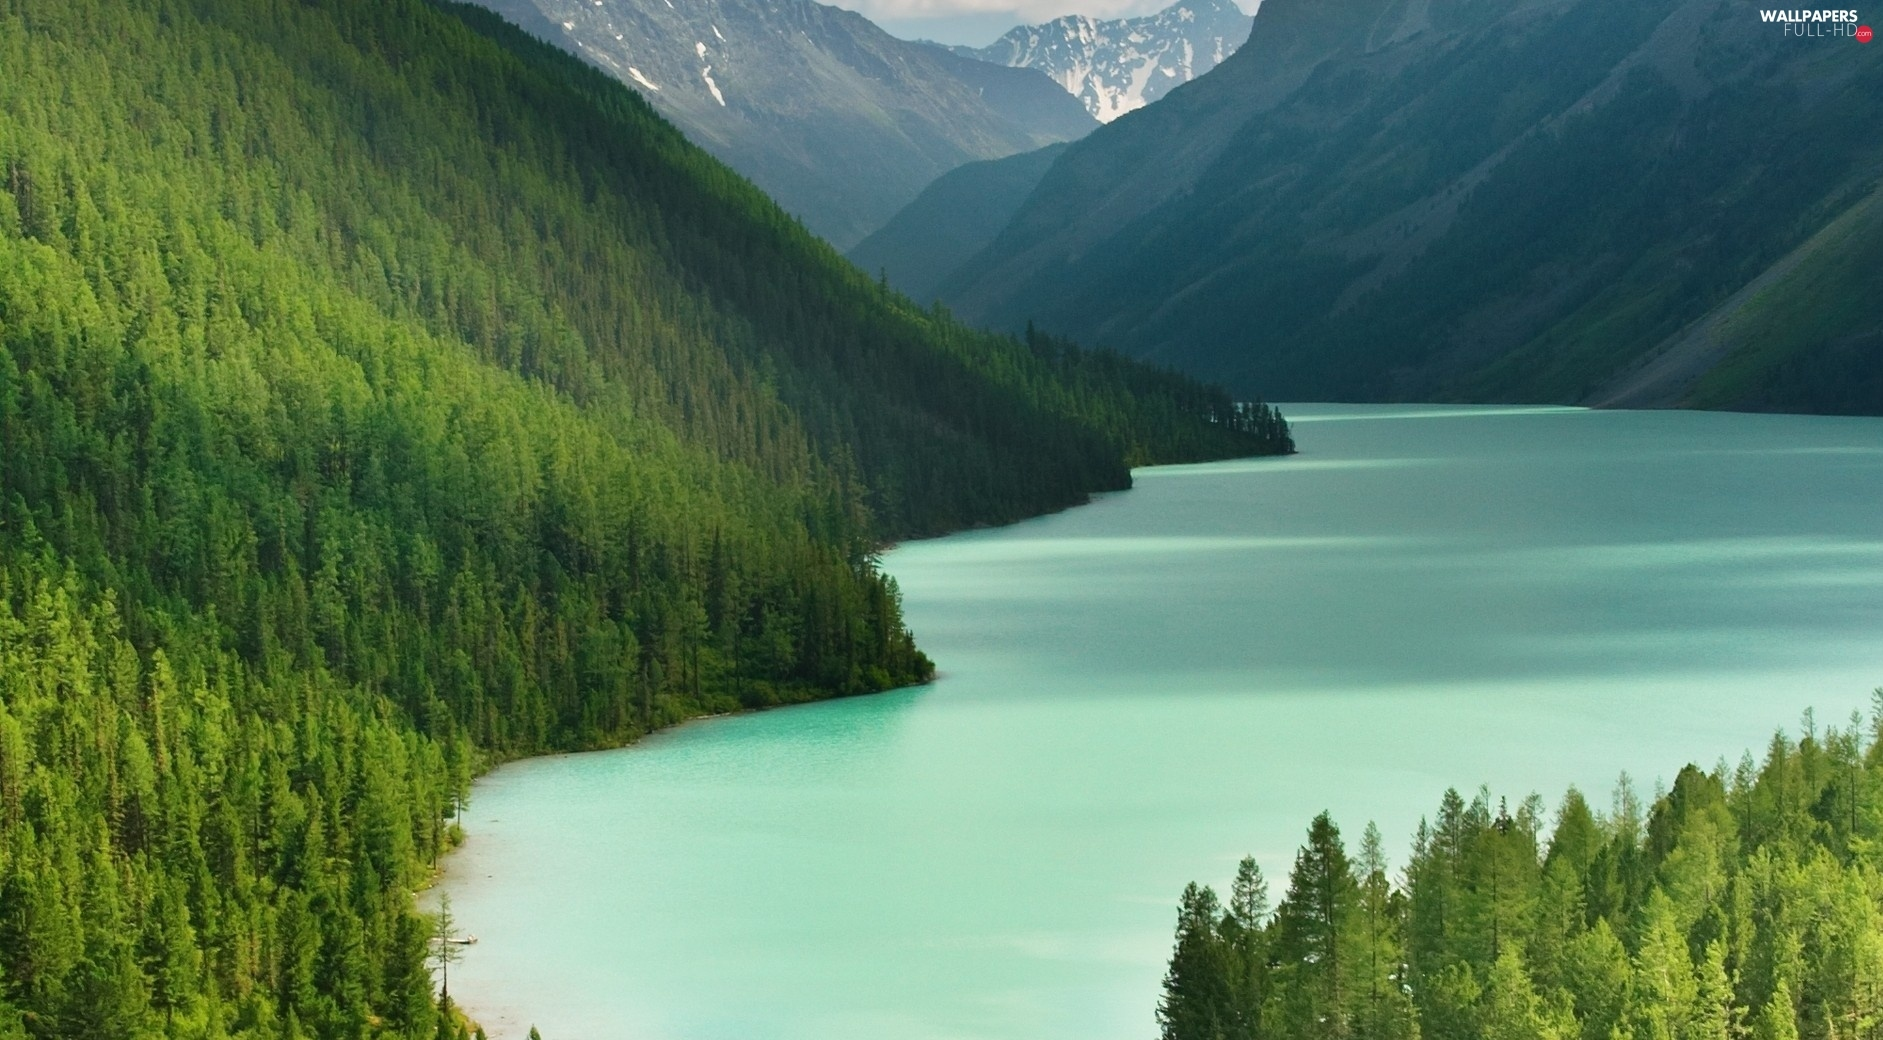 water, viewes, Mountains, trees